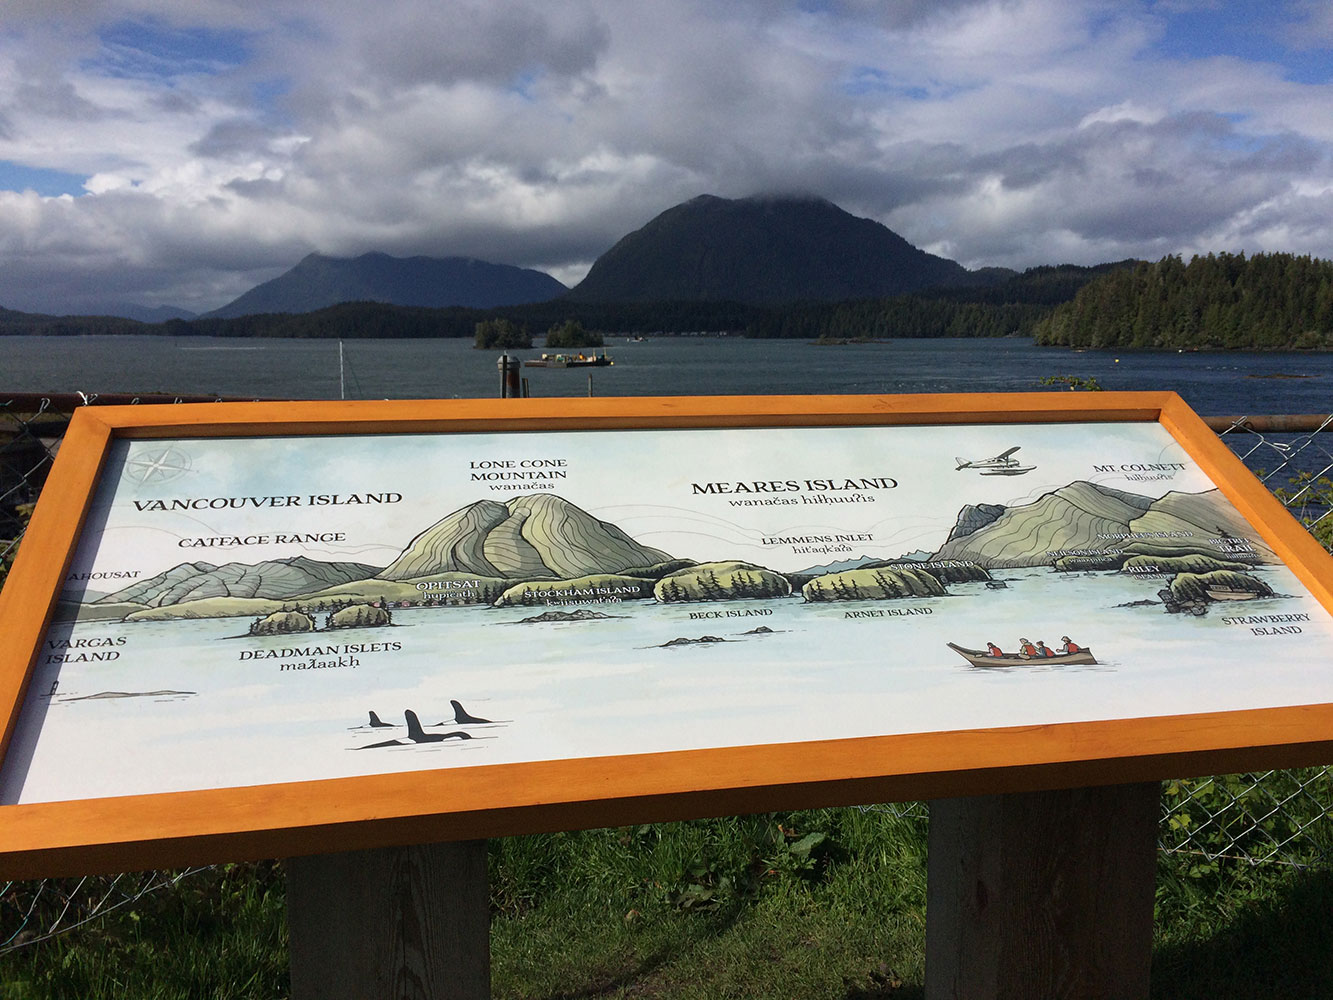 District of Tofino